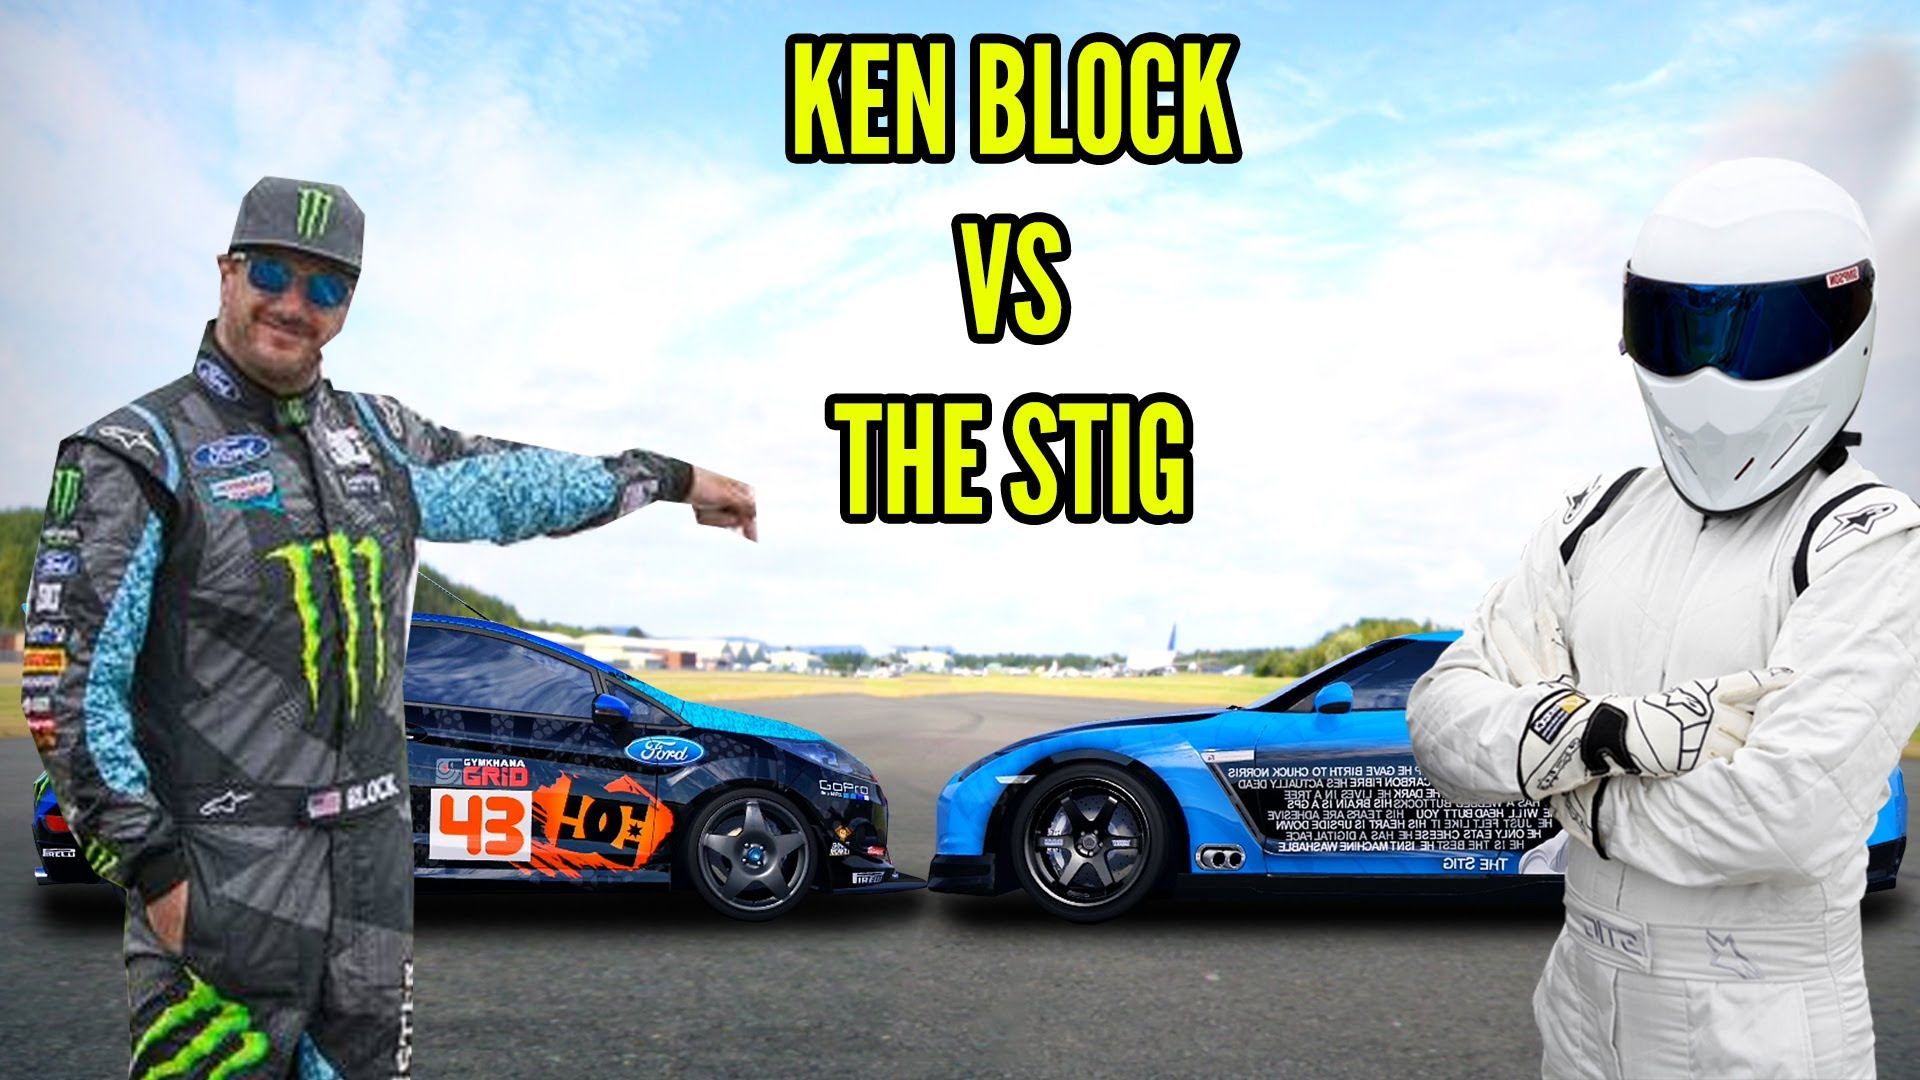 Ken Block VS The Stig - ULTIMATE SHOWDOWN